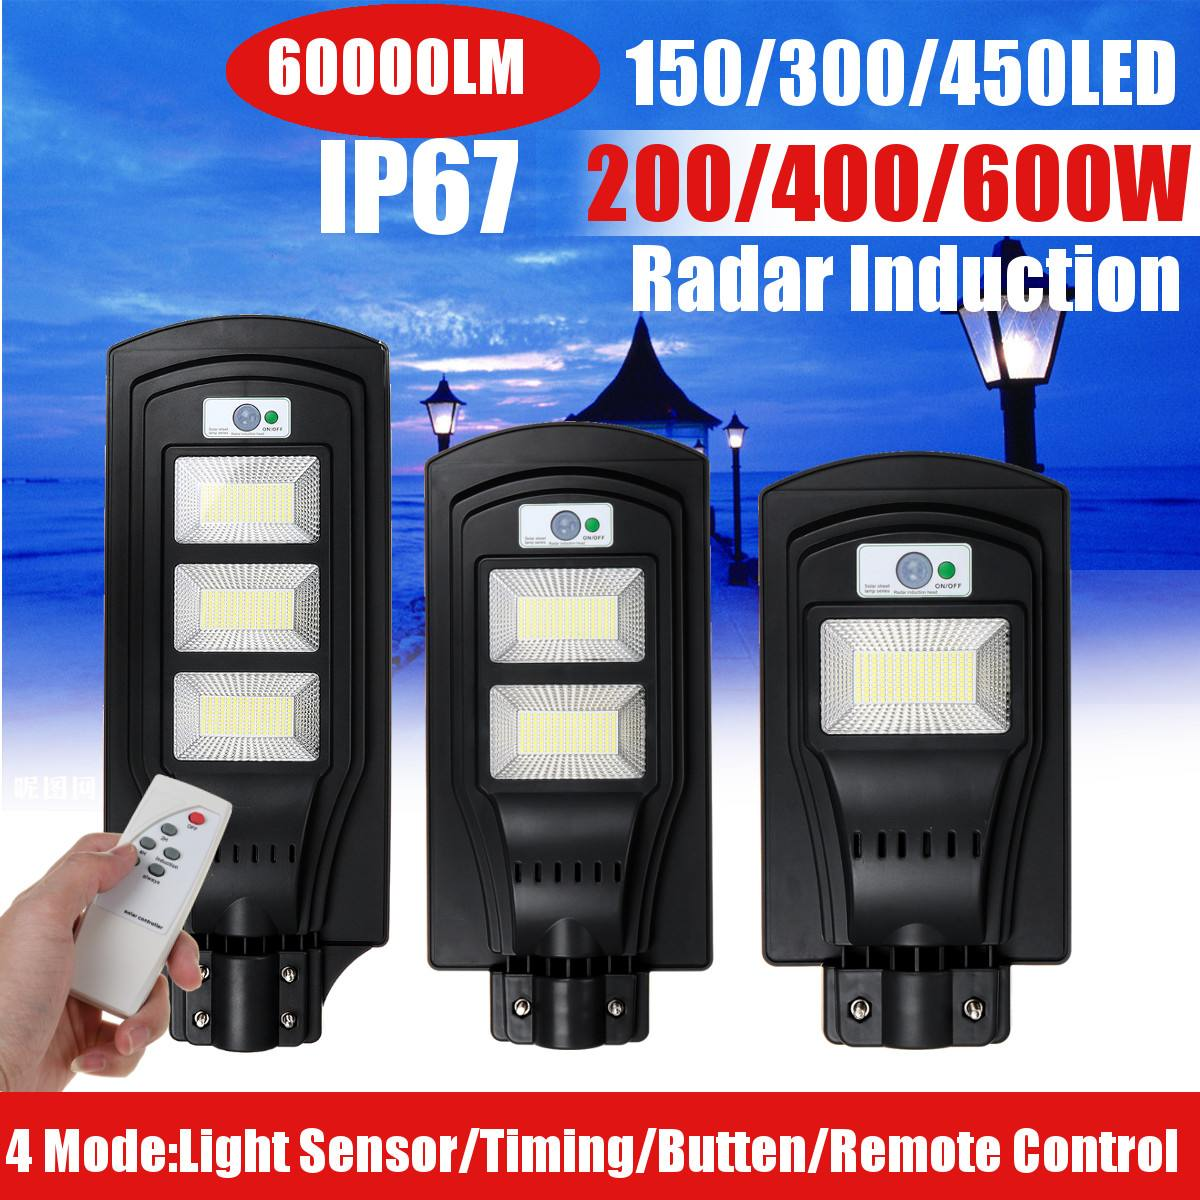 200W 400W 600W LED Outdoor Solar Street Light Solar Powered IP67 Wall Lamp Radar Motion Remote Light Control For Garden Yard